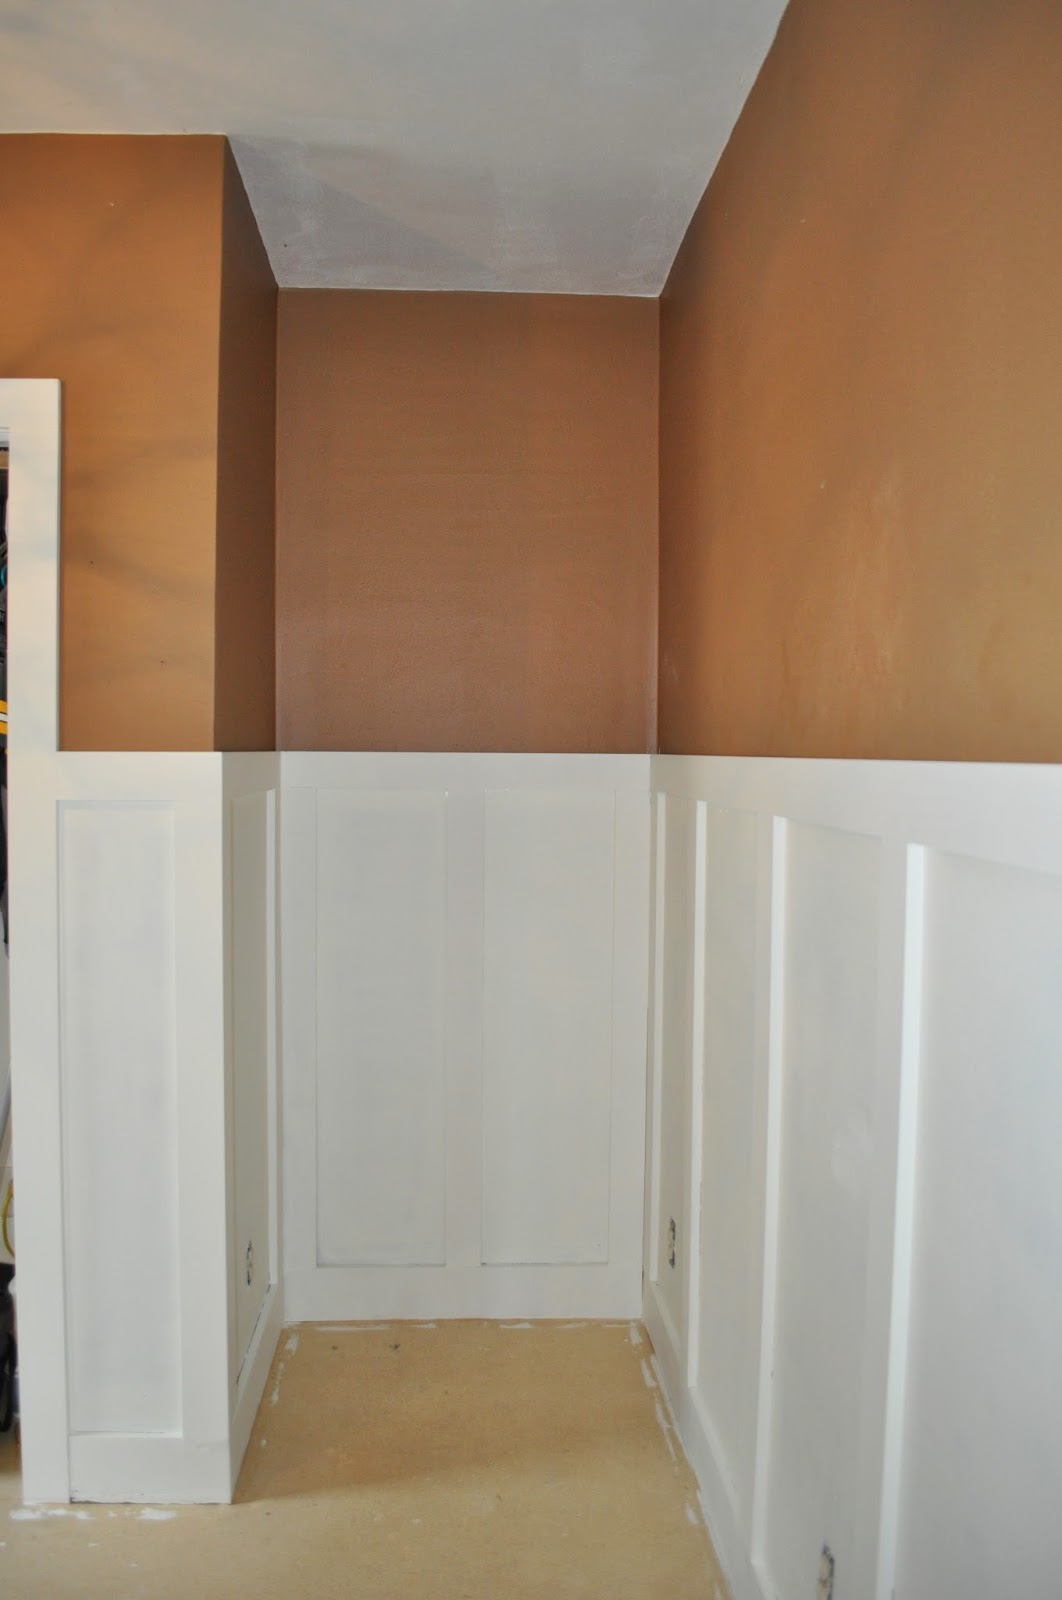 wainscoting, bedroom reno, bedroom redo, white paint, chocolate paint, lighting, menards